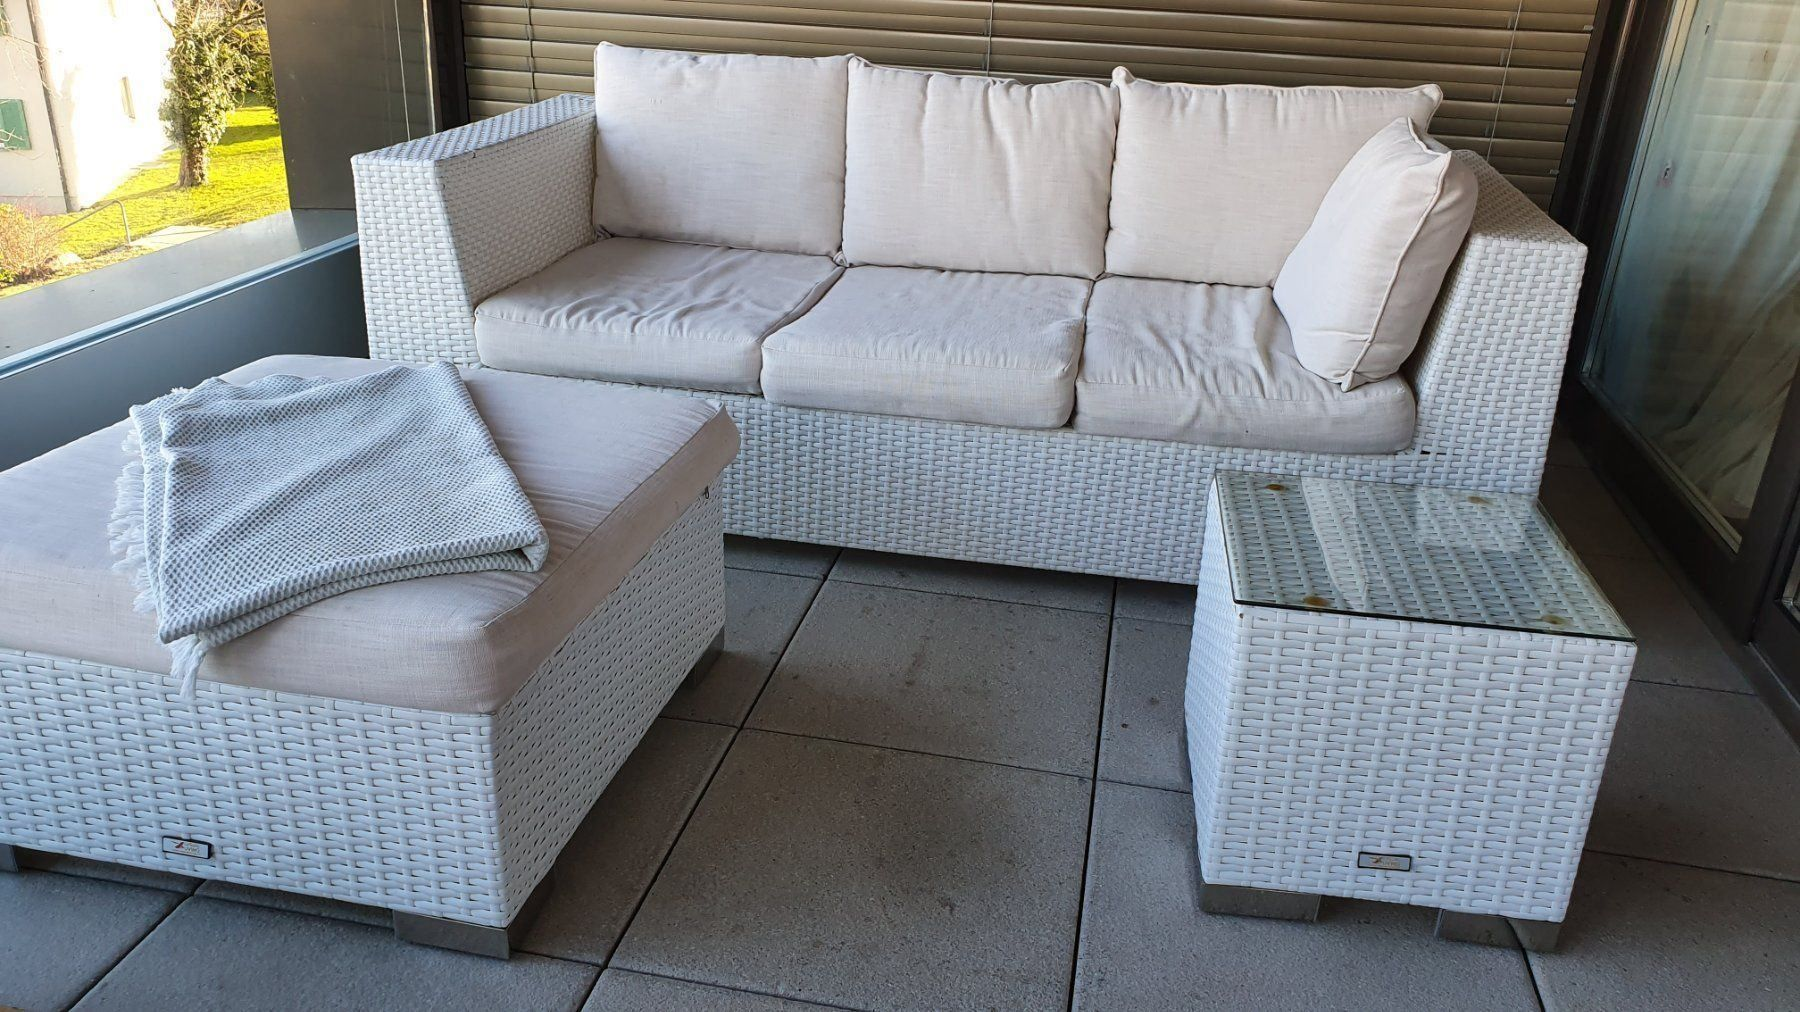 Rattan Lounge weiss (Casual Living) kaufen auf Ricardo